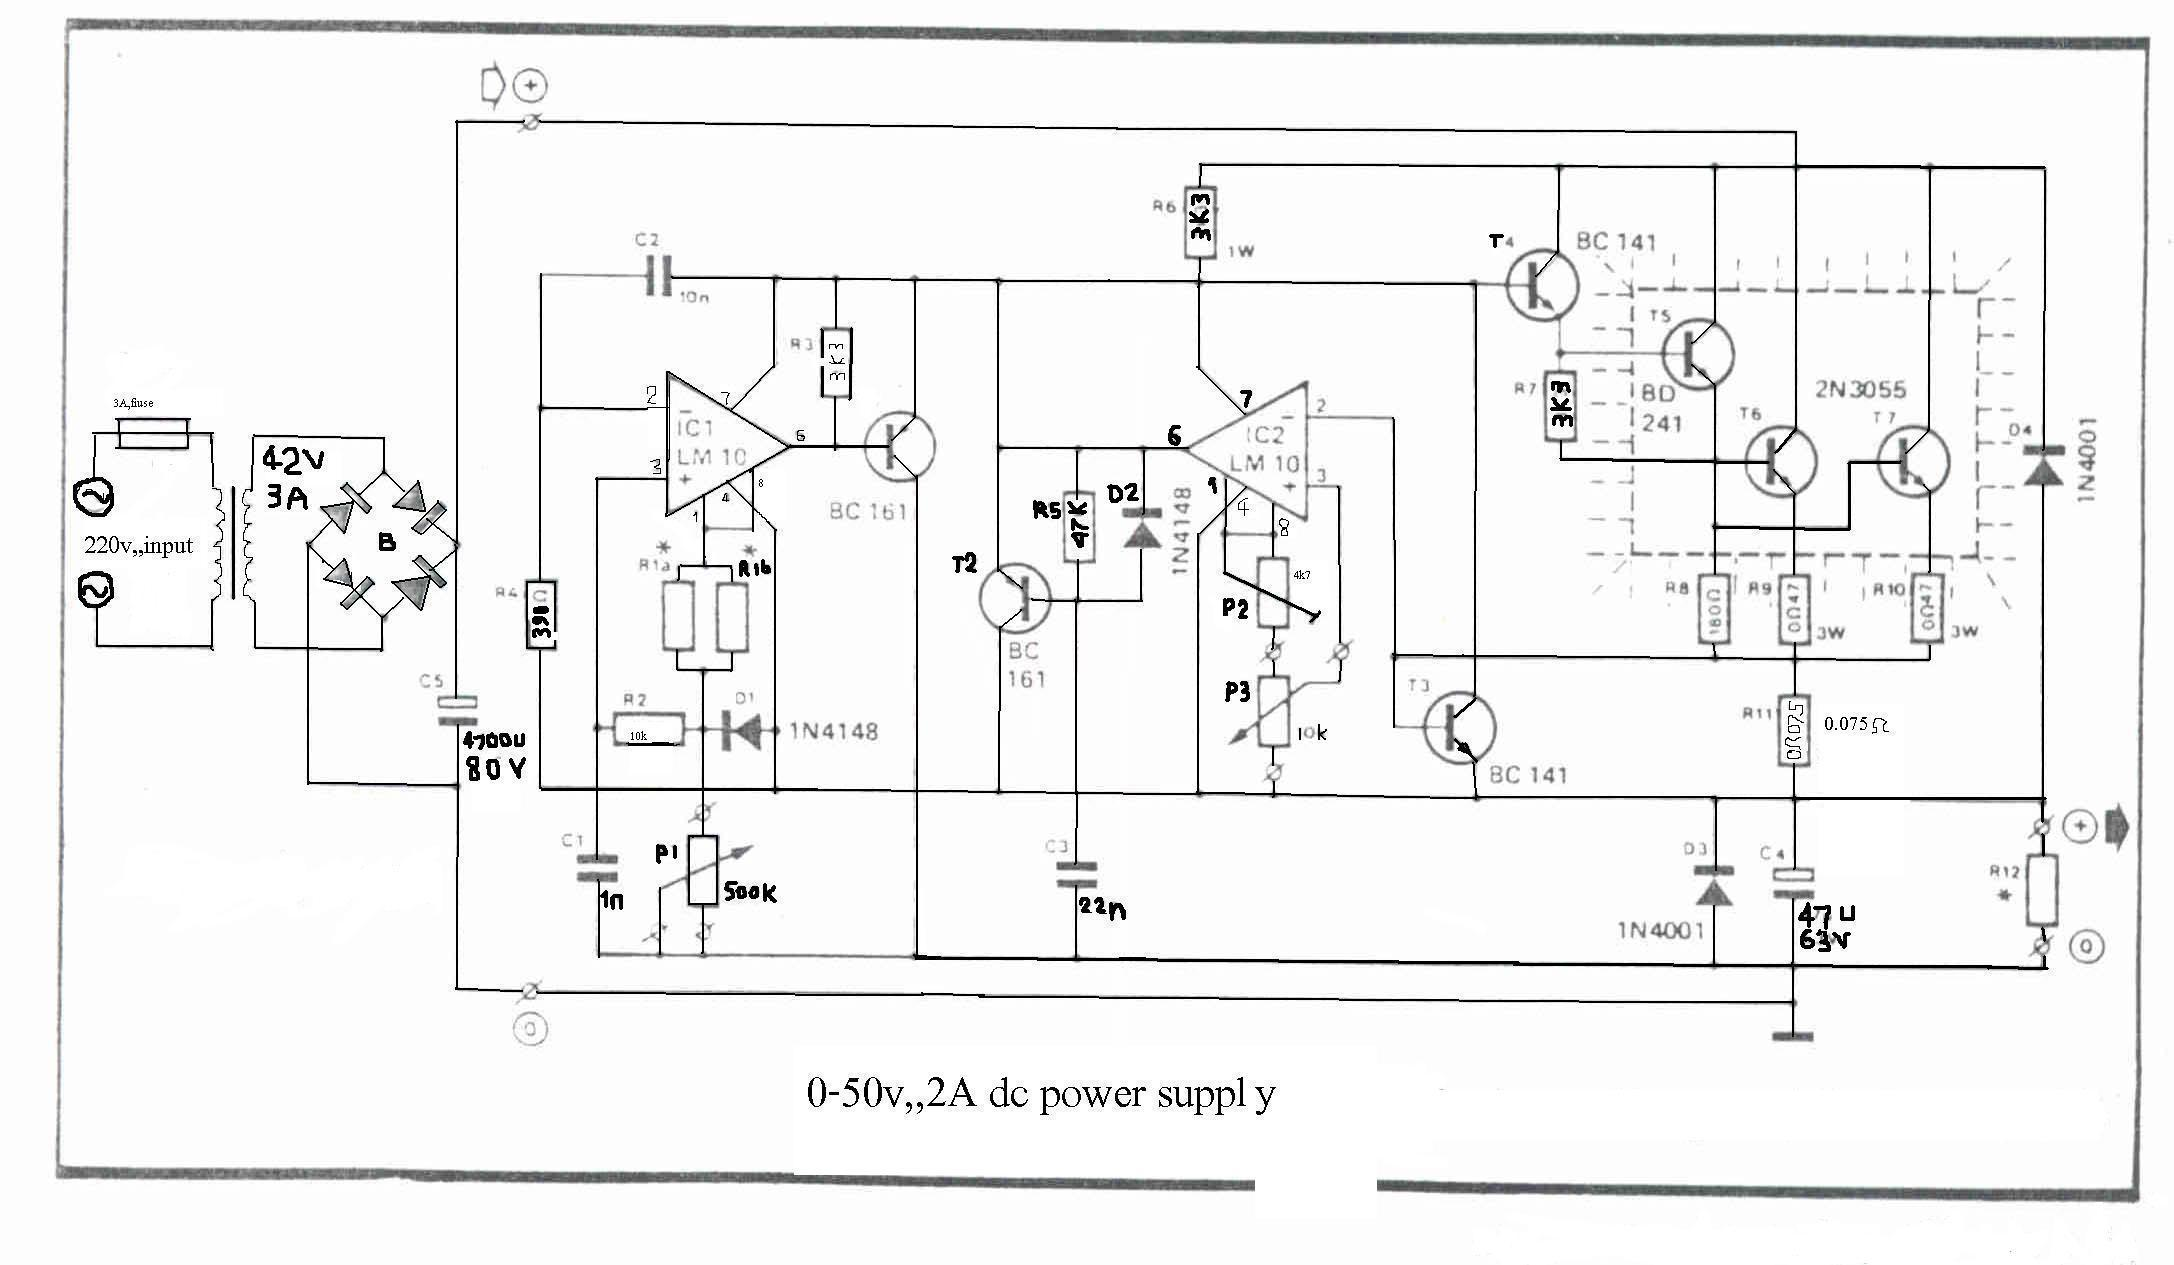 Top Circuits Page 194 Touch Dimmer For Lamps Electronic And Diagramelectronics 0 50v 2a Bench Power Supply